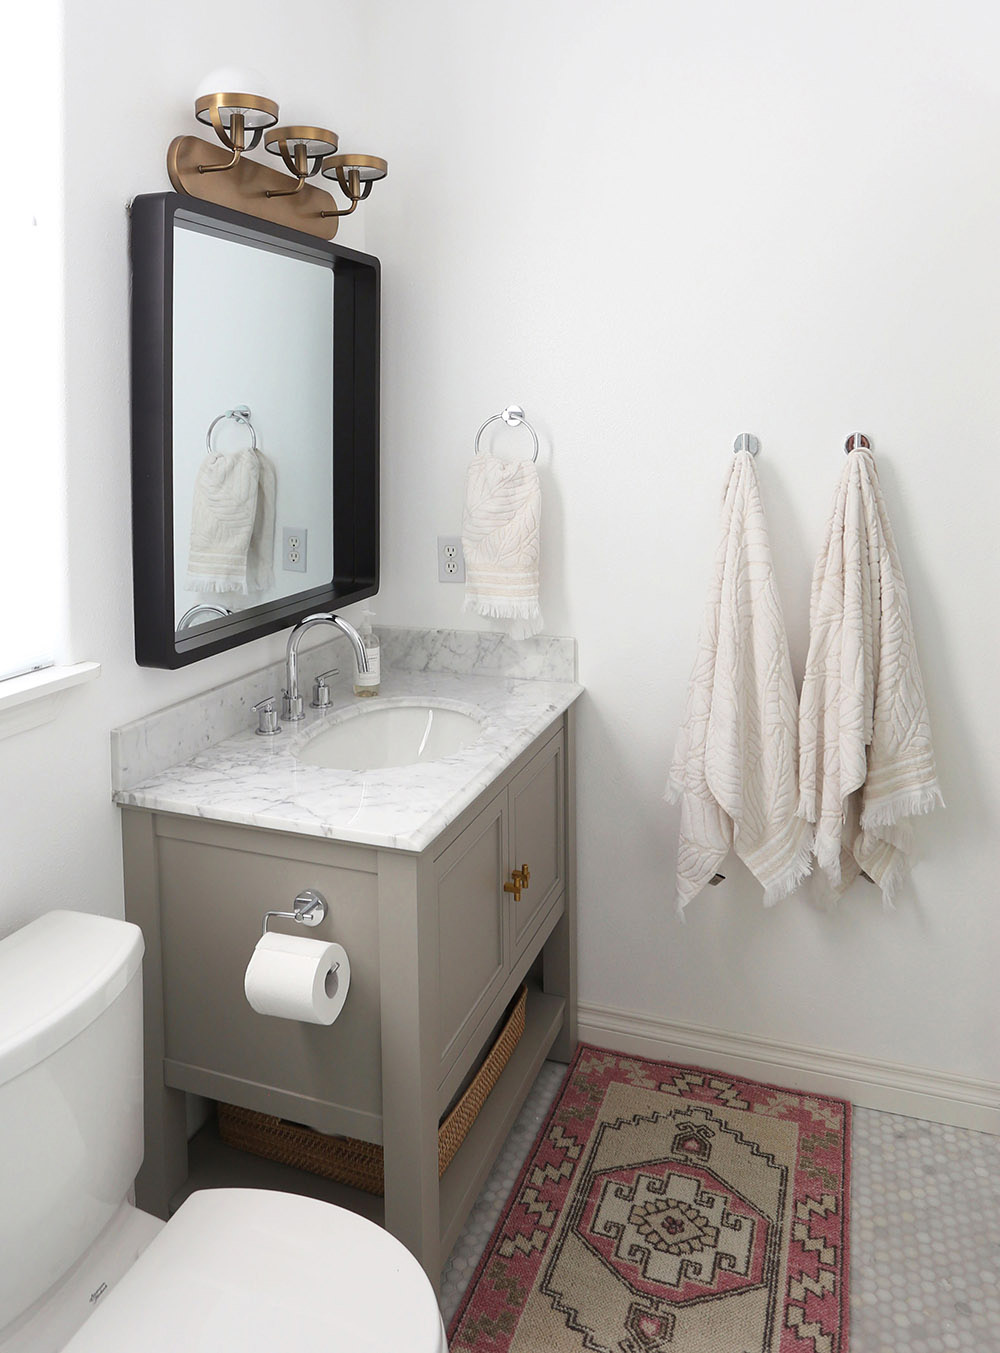 A modern square black mirror with rounded edges hangs over a bathroom vanity.